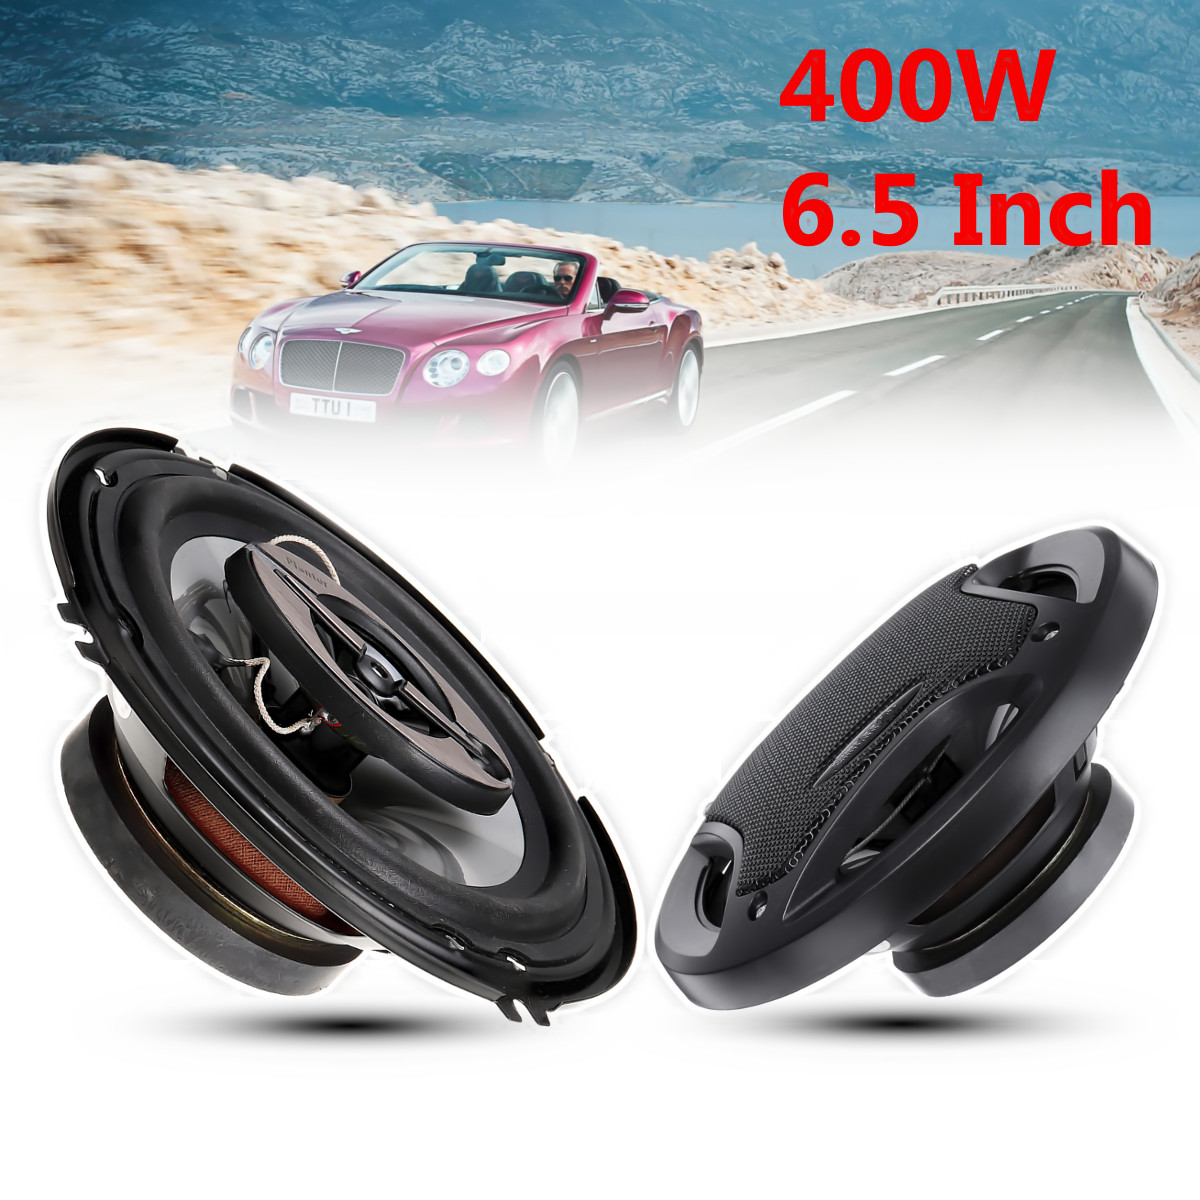 2pcs 6.5 inch 400W 3 Way Auto Car Loudspeaker Coaxial Speakers Horn Audio Music Stereo Hifi Vehicle Car Speaker and Subwoofer